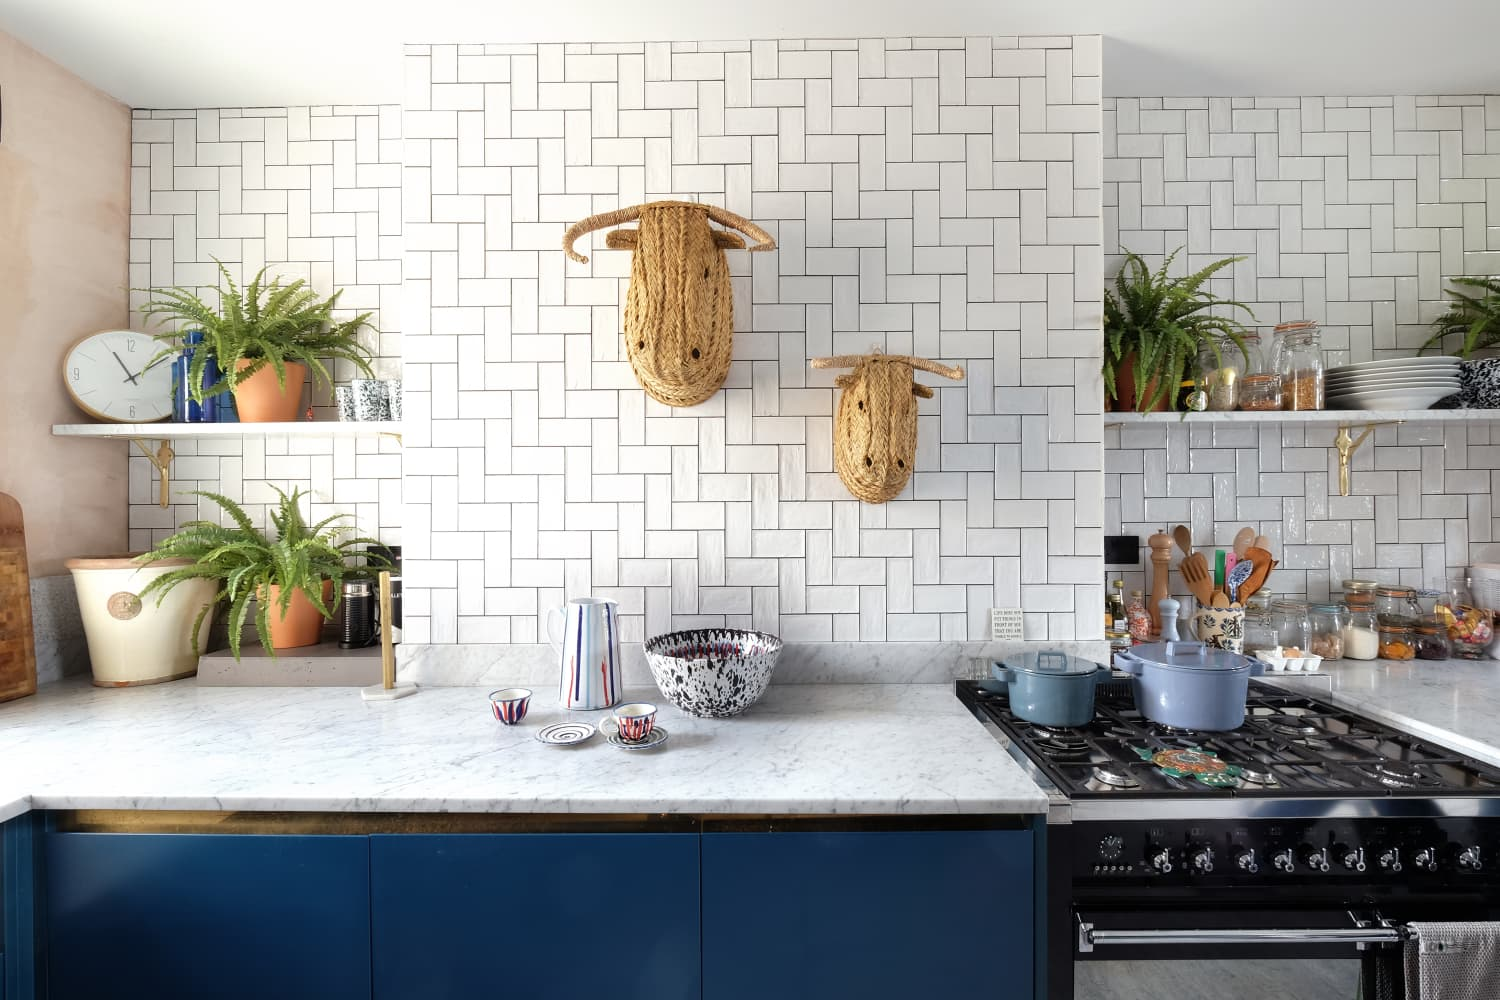 The Best Kitchen Countertop Materials, According to Home Builders